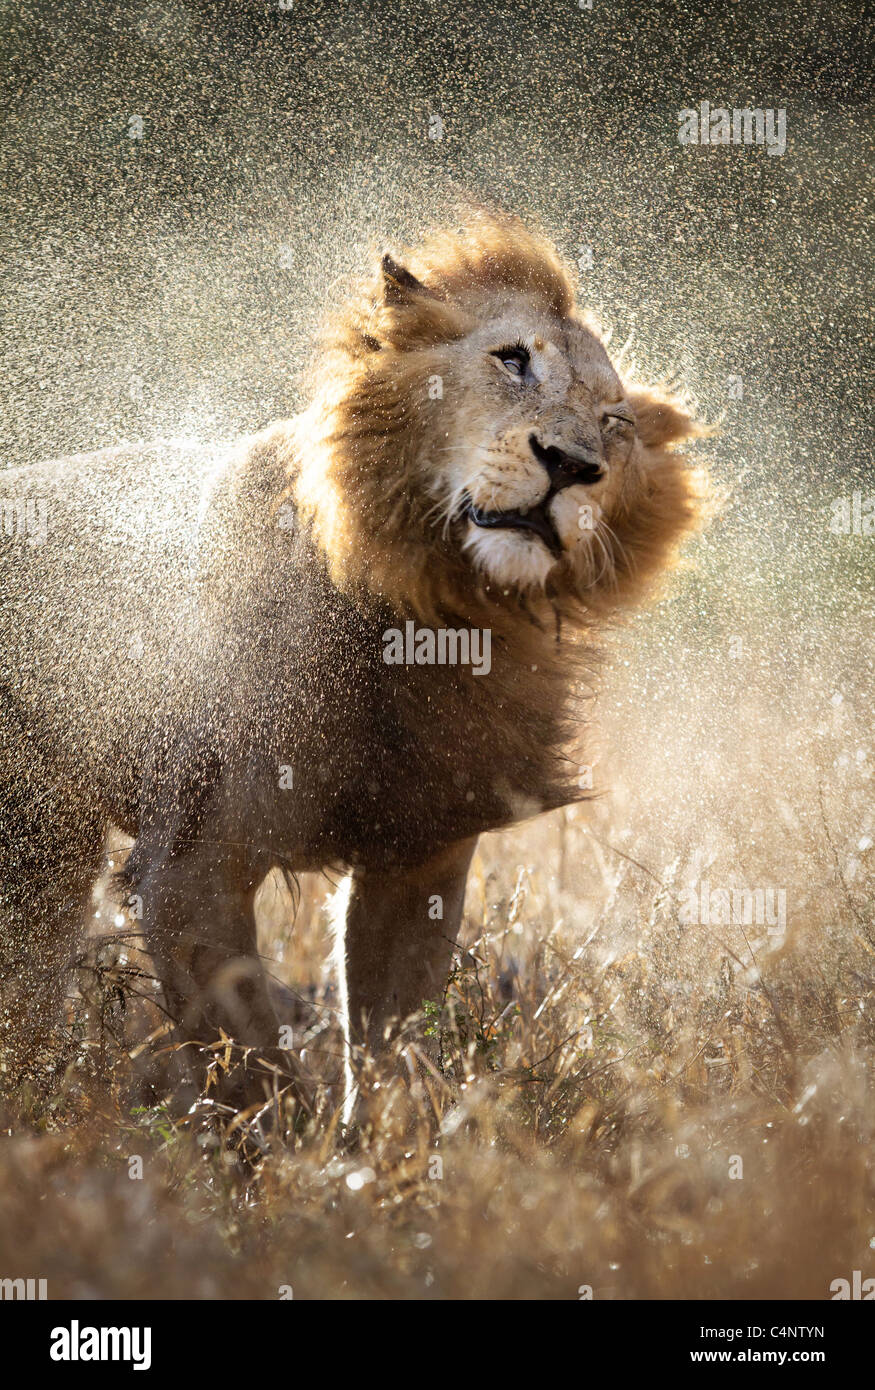 Male lion shaking off the water after a rainstorm - Kruger National Park - South Africa - Stock Image